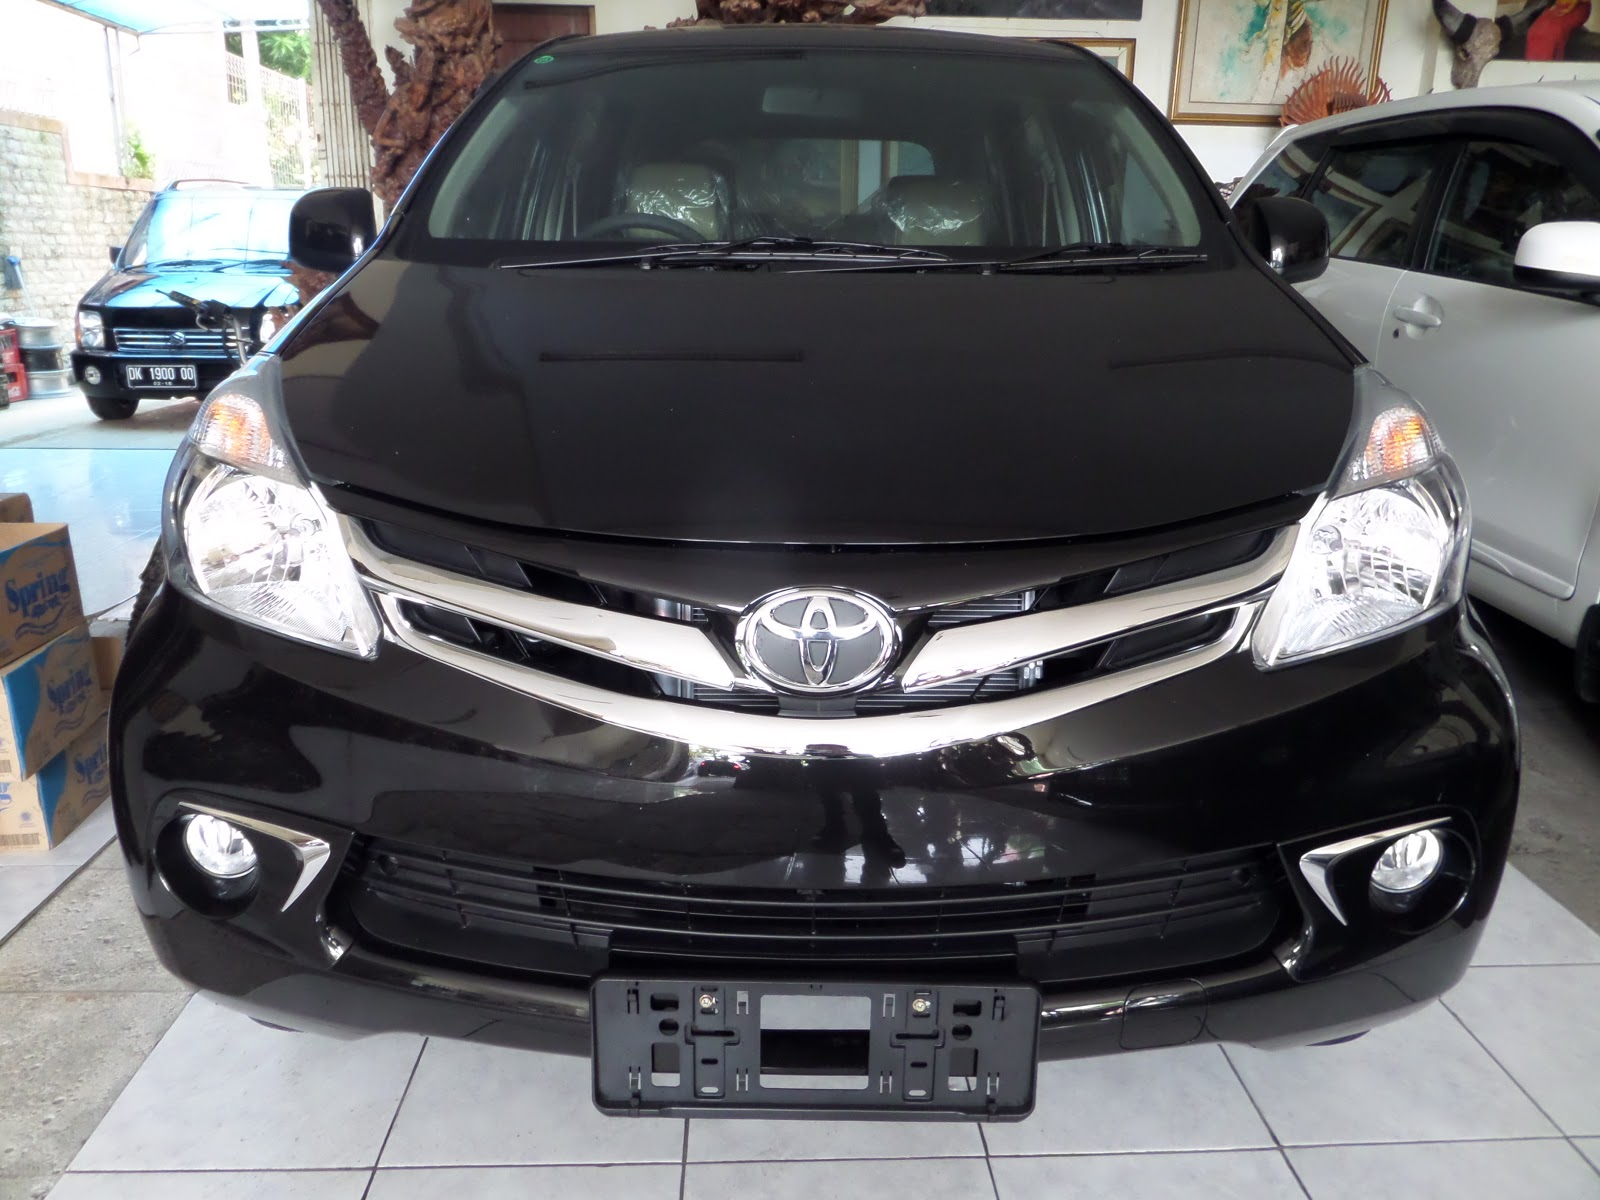 Grand New Avanza Warna Grey Metallic Harga Mobil All Kijang Innova 2018 Toyota 2013 Type G Mo88ilbekas